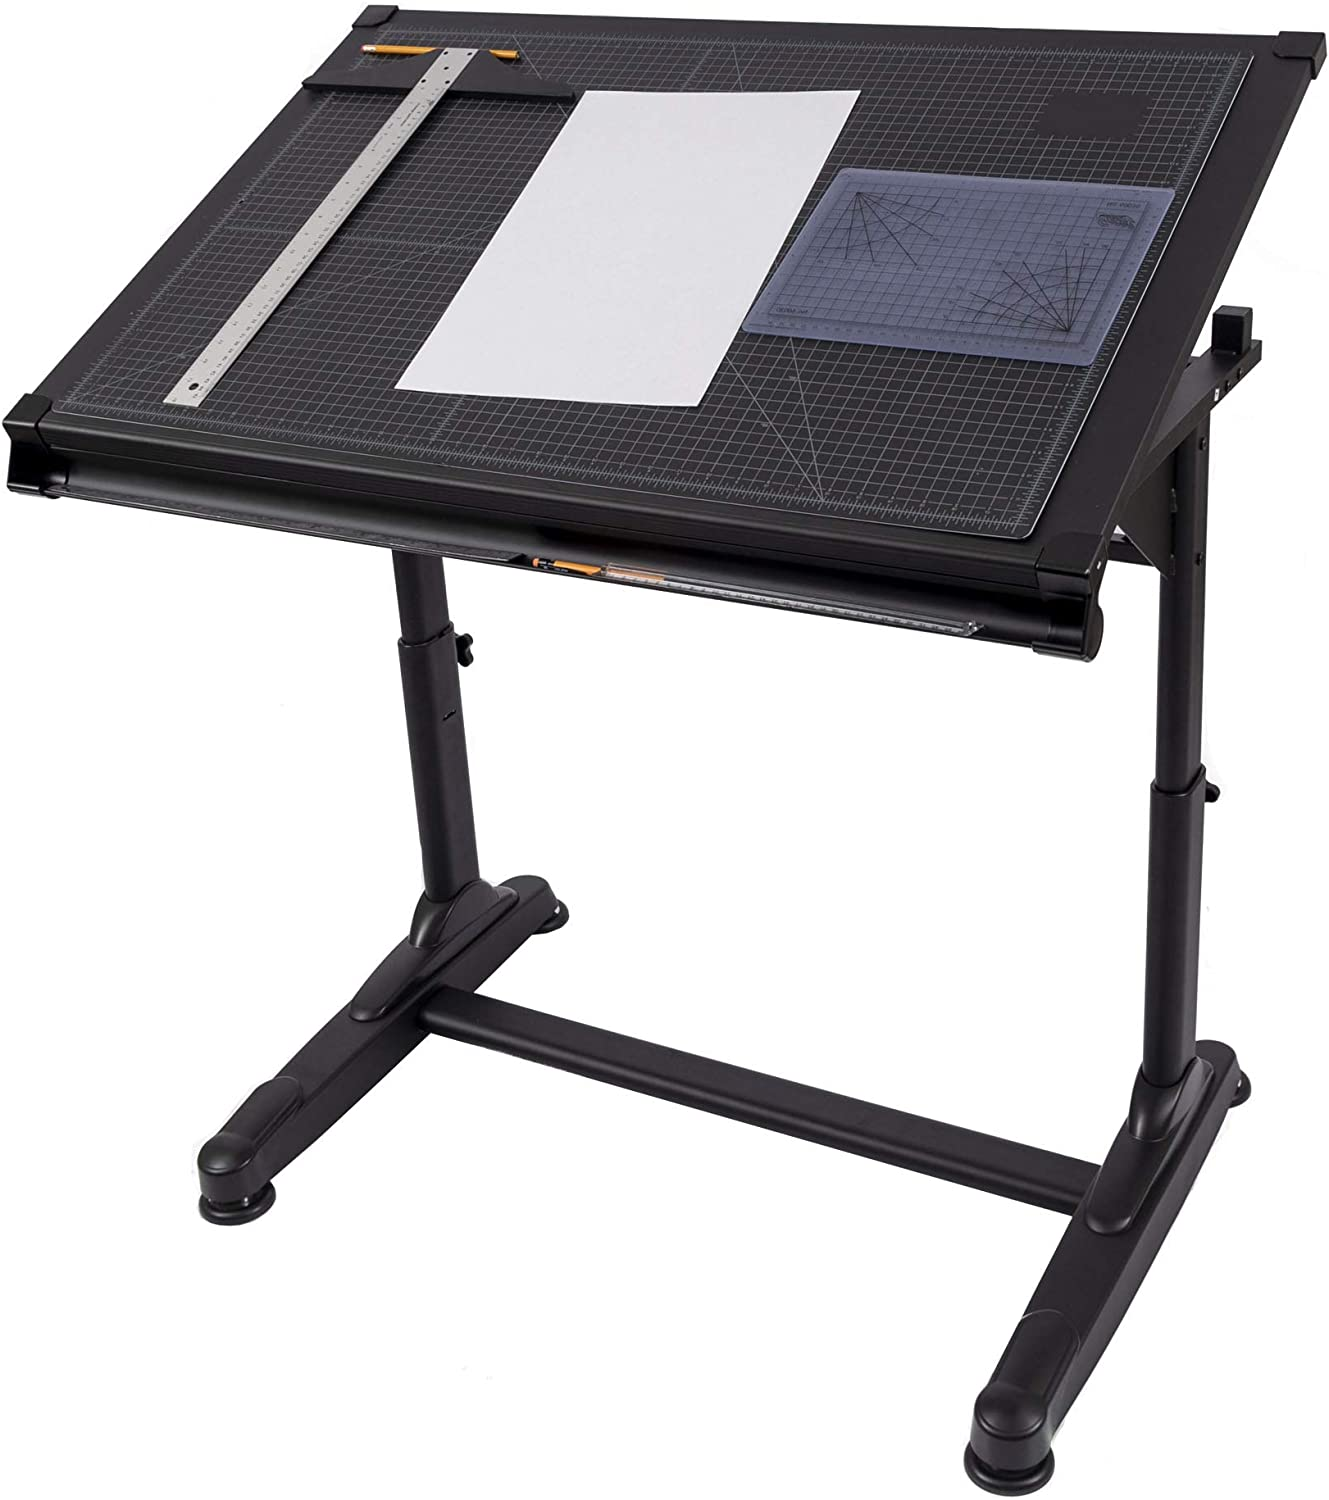 Stand Up Desk Store Height Adjustable Drawing and Drafting Table with 39.2 W x 27.5 D Surface, Black